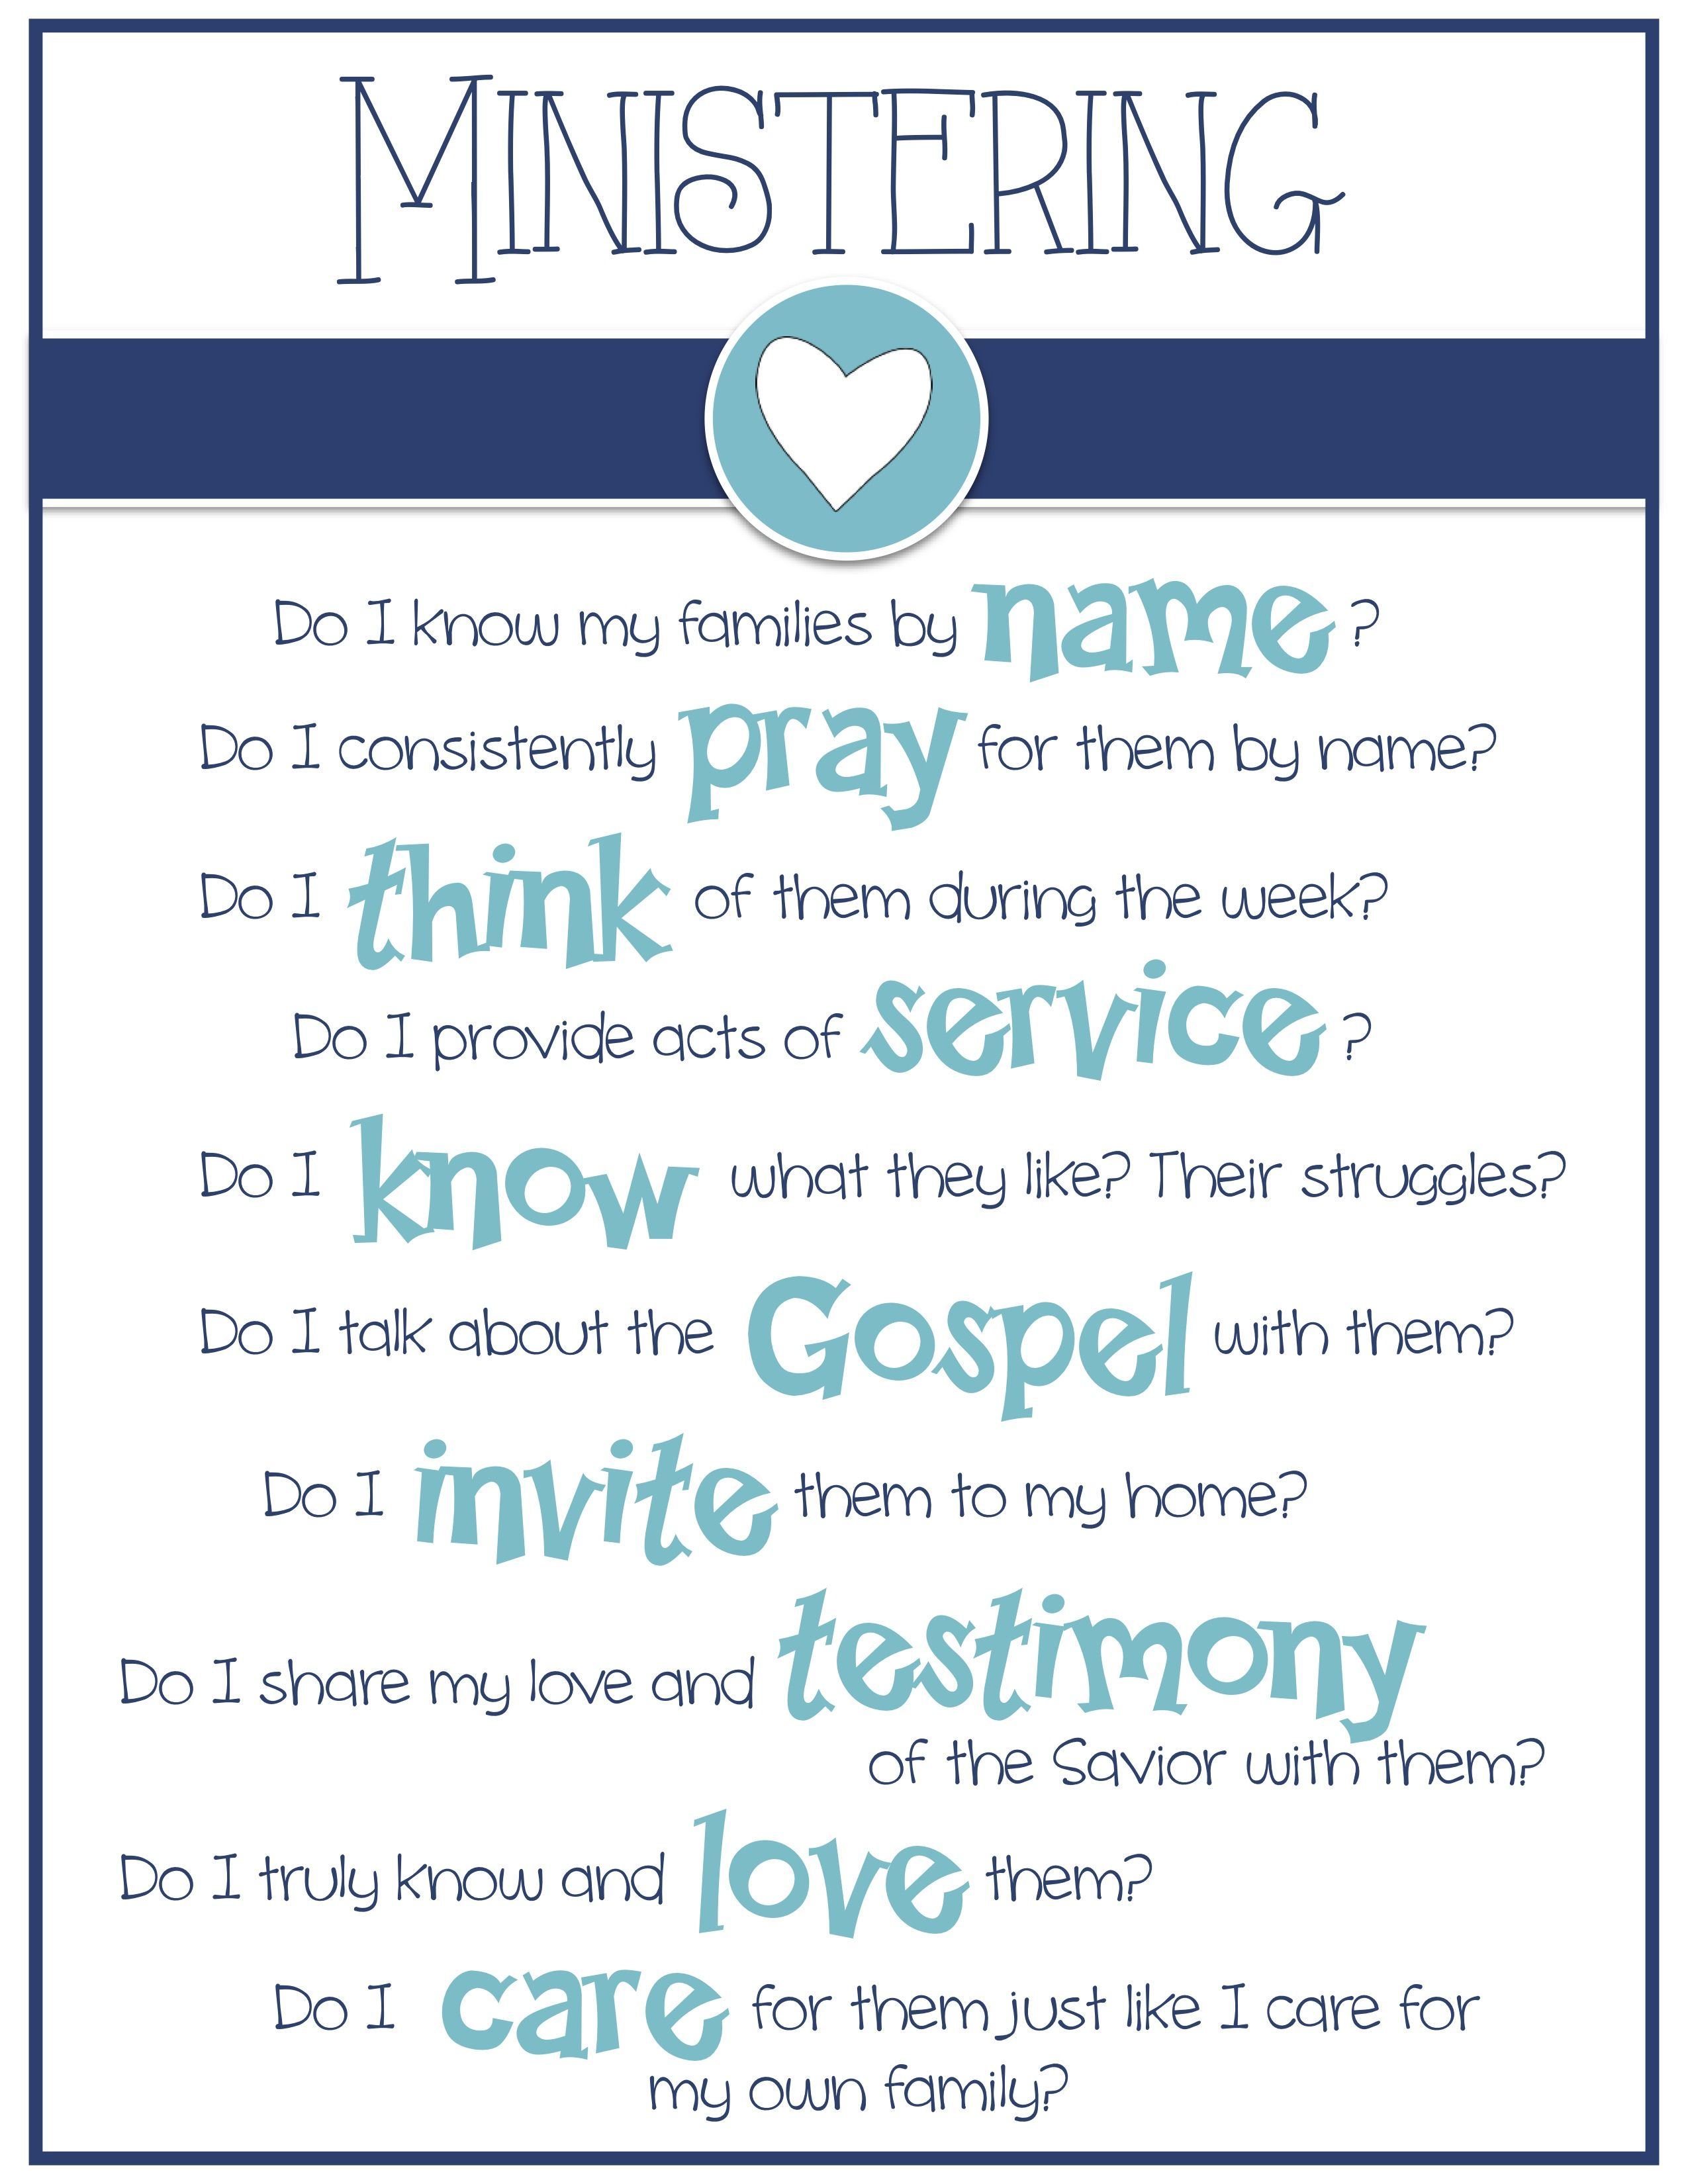 Relief Society Lesson November 2019 Ideas For Missionary Work Ministering Questions: Do I | Church of Jesus Christ | Relief